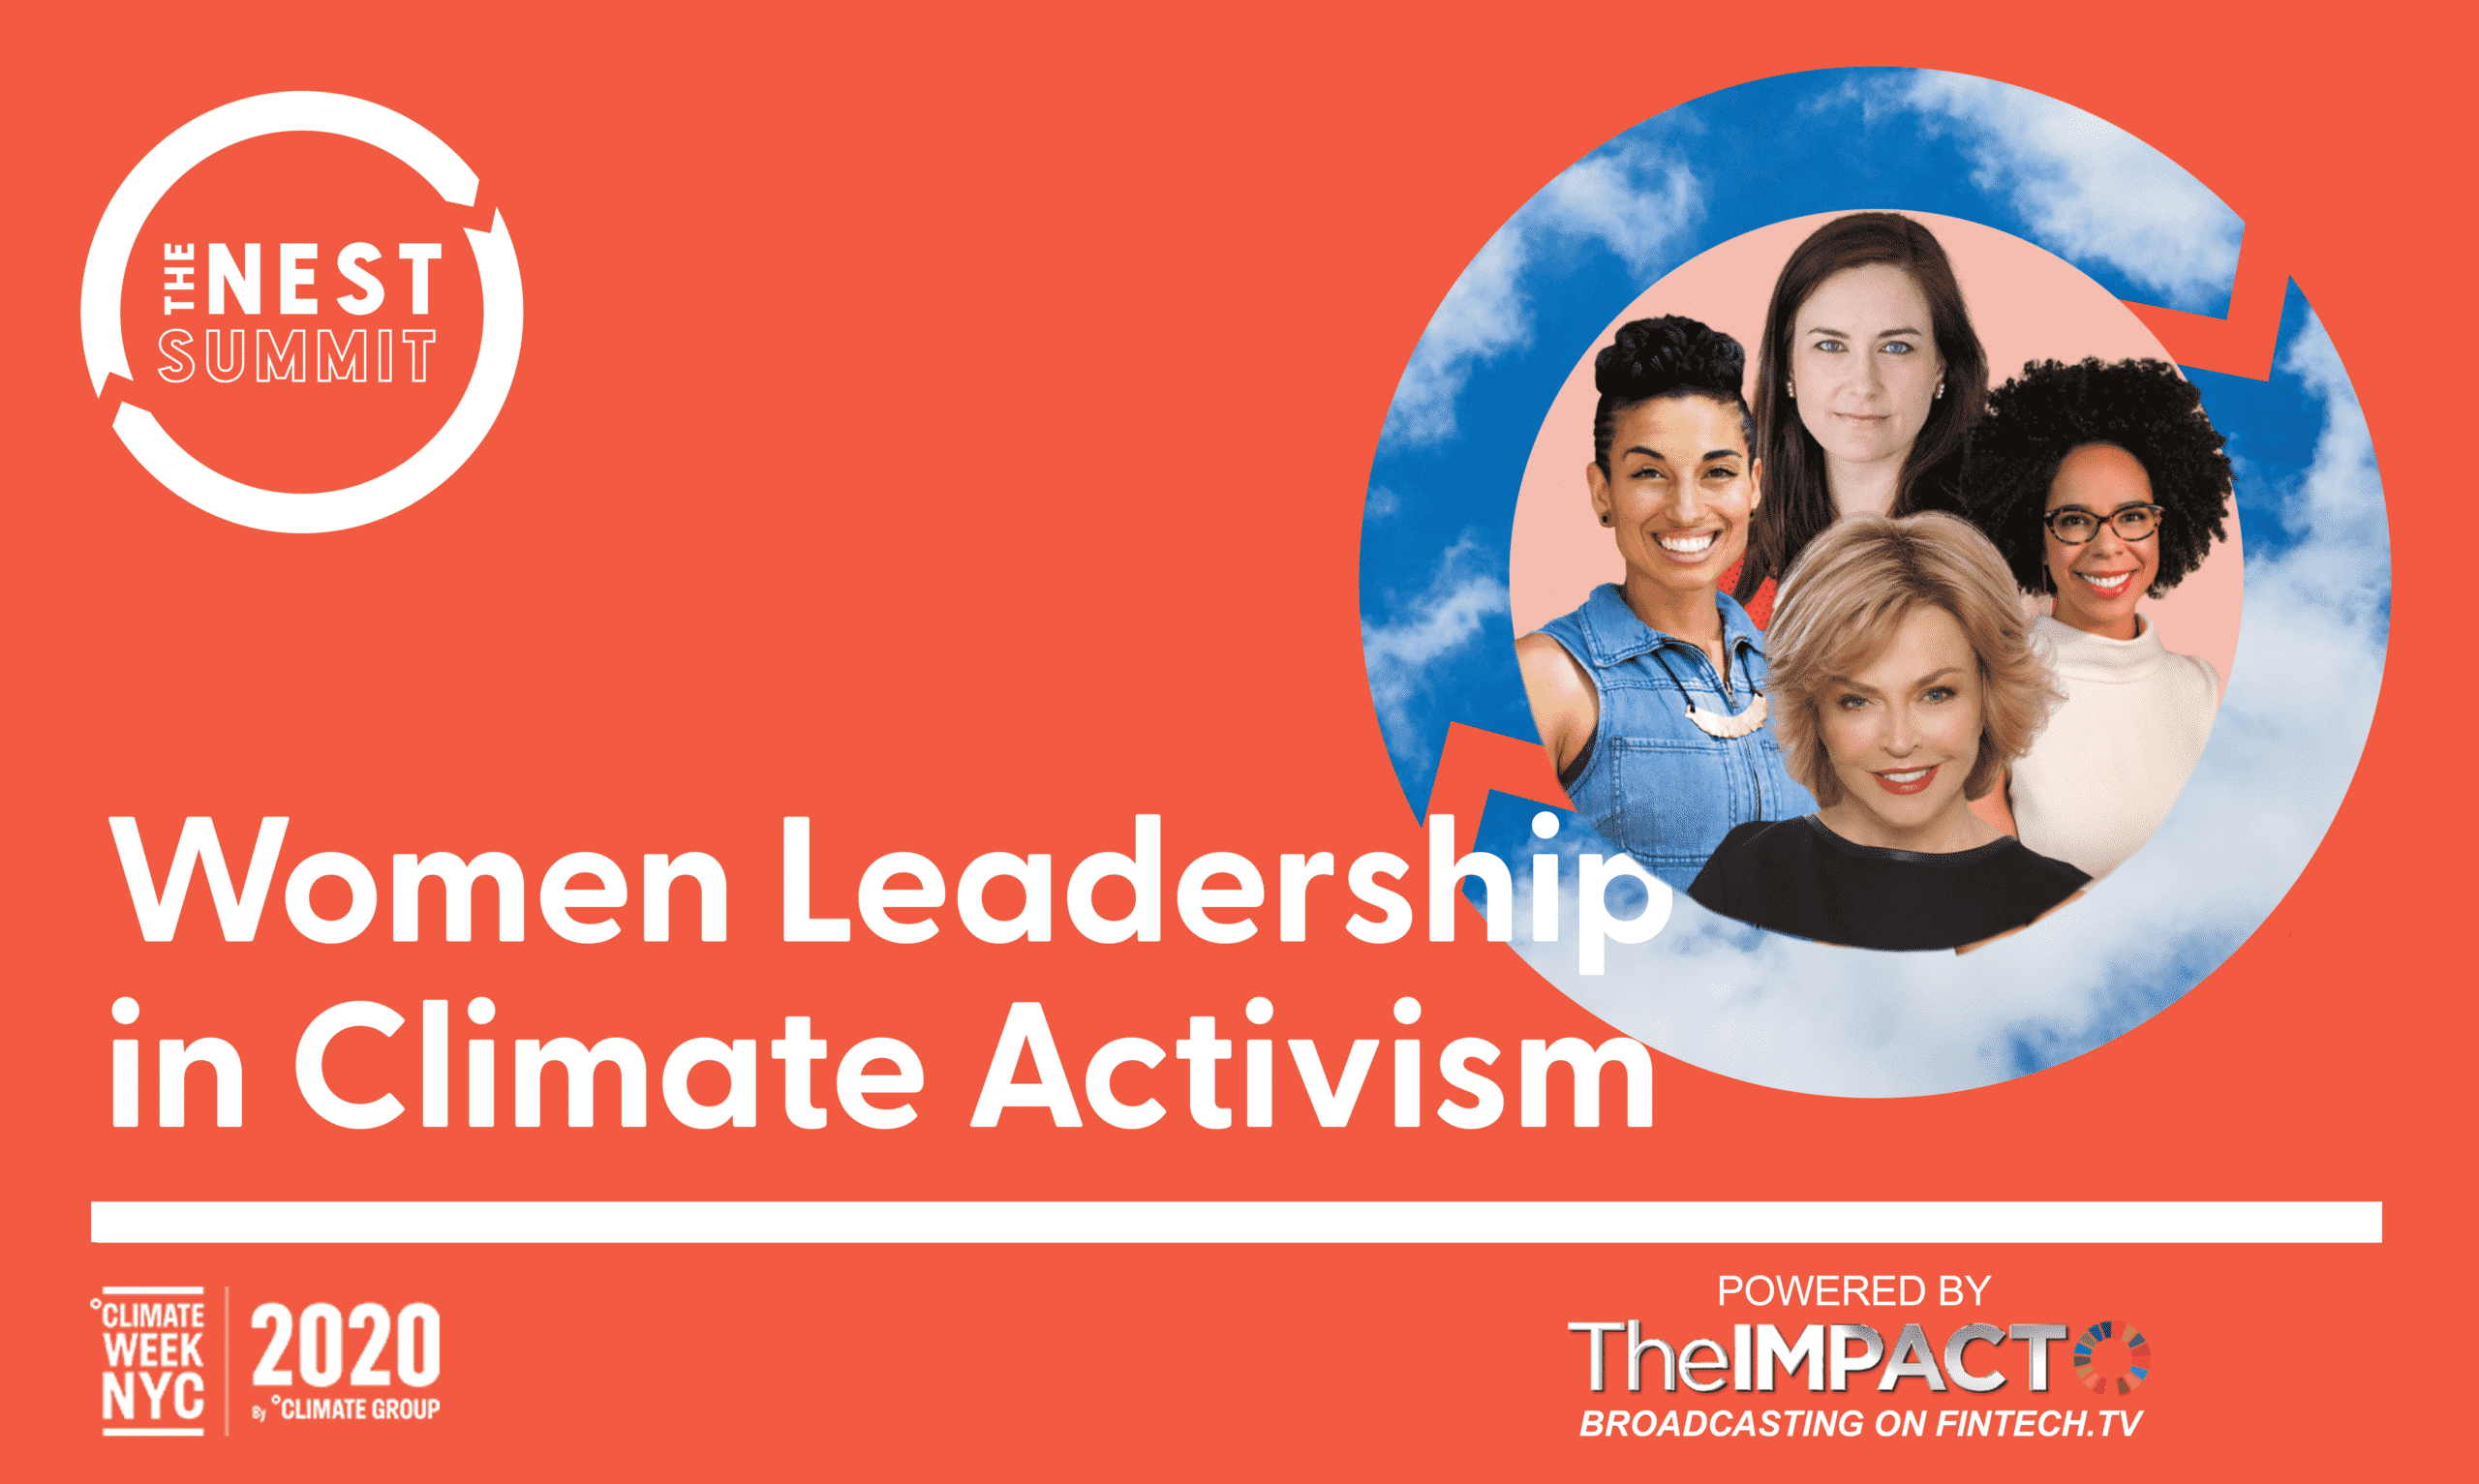 Pat Mitchell on Women Leadership in Climate Activism